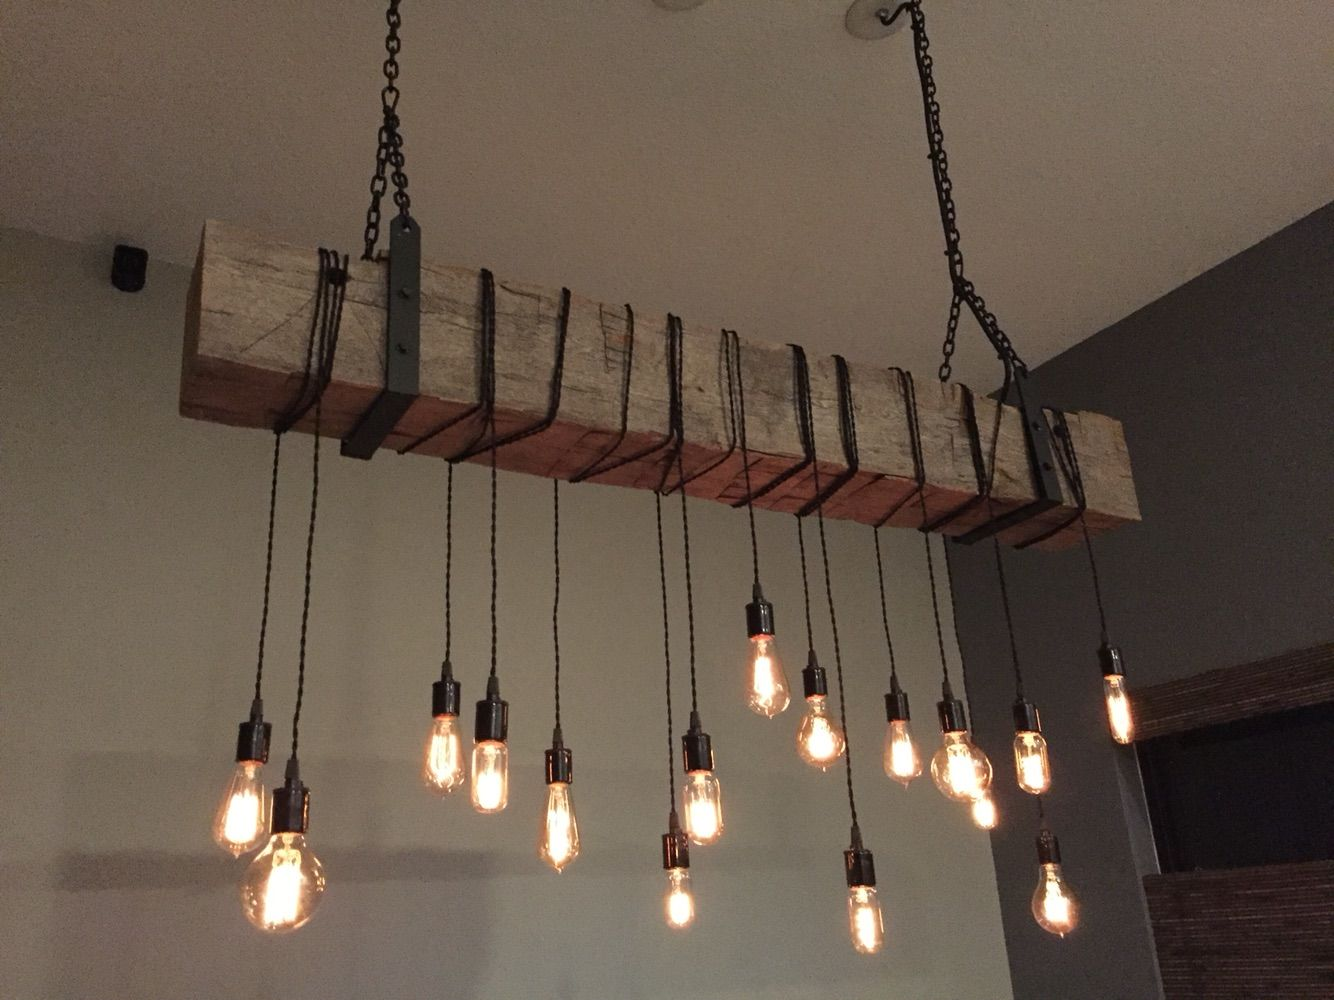 Buy a custom reclaimed barn beam chandelier light fixture modern custom made reclaimed barn beam chandelier light fixture modern industrial rustic restaurant bar arubaitofo Gallery